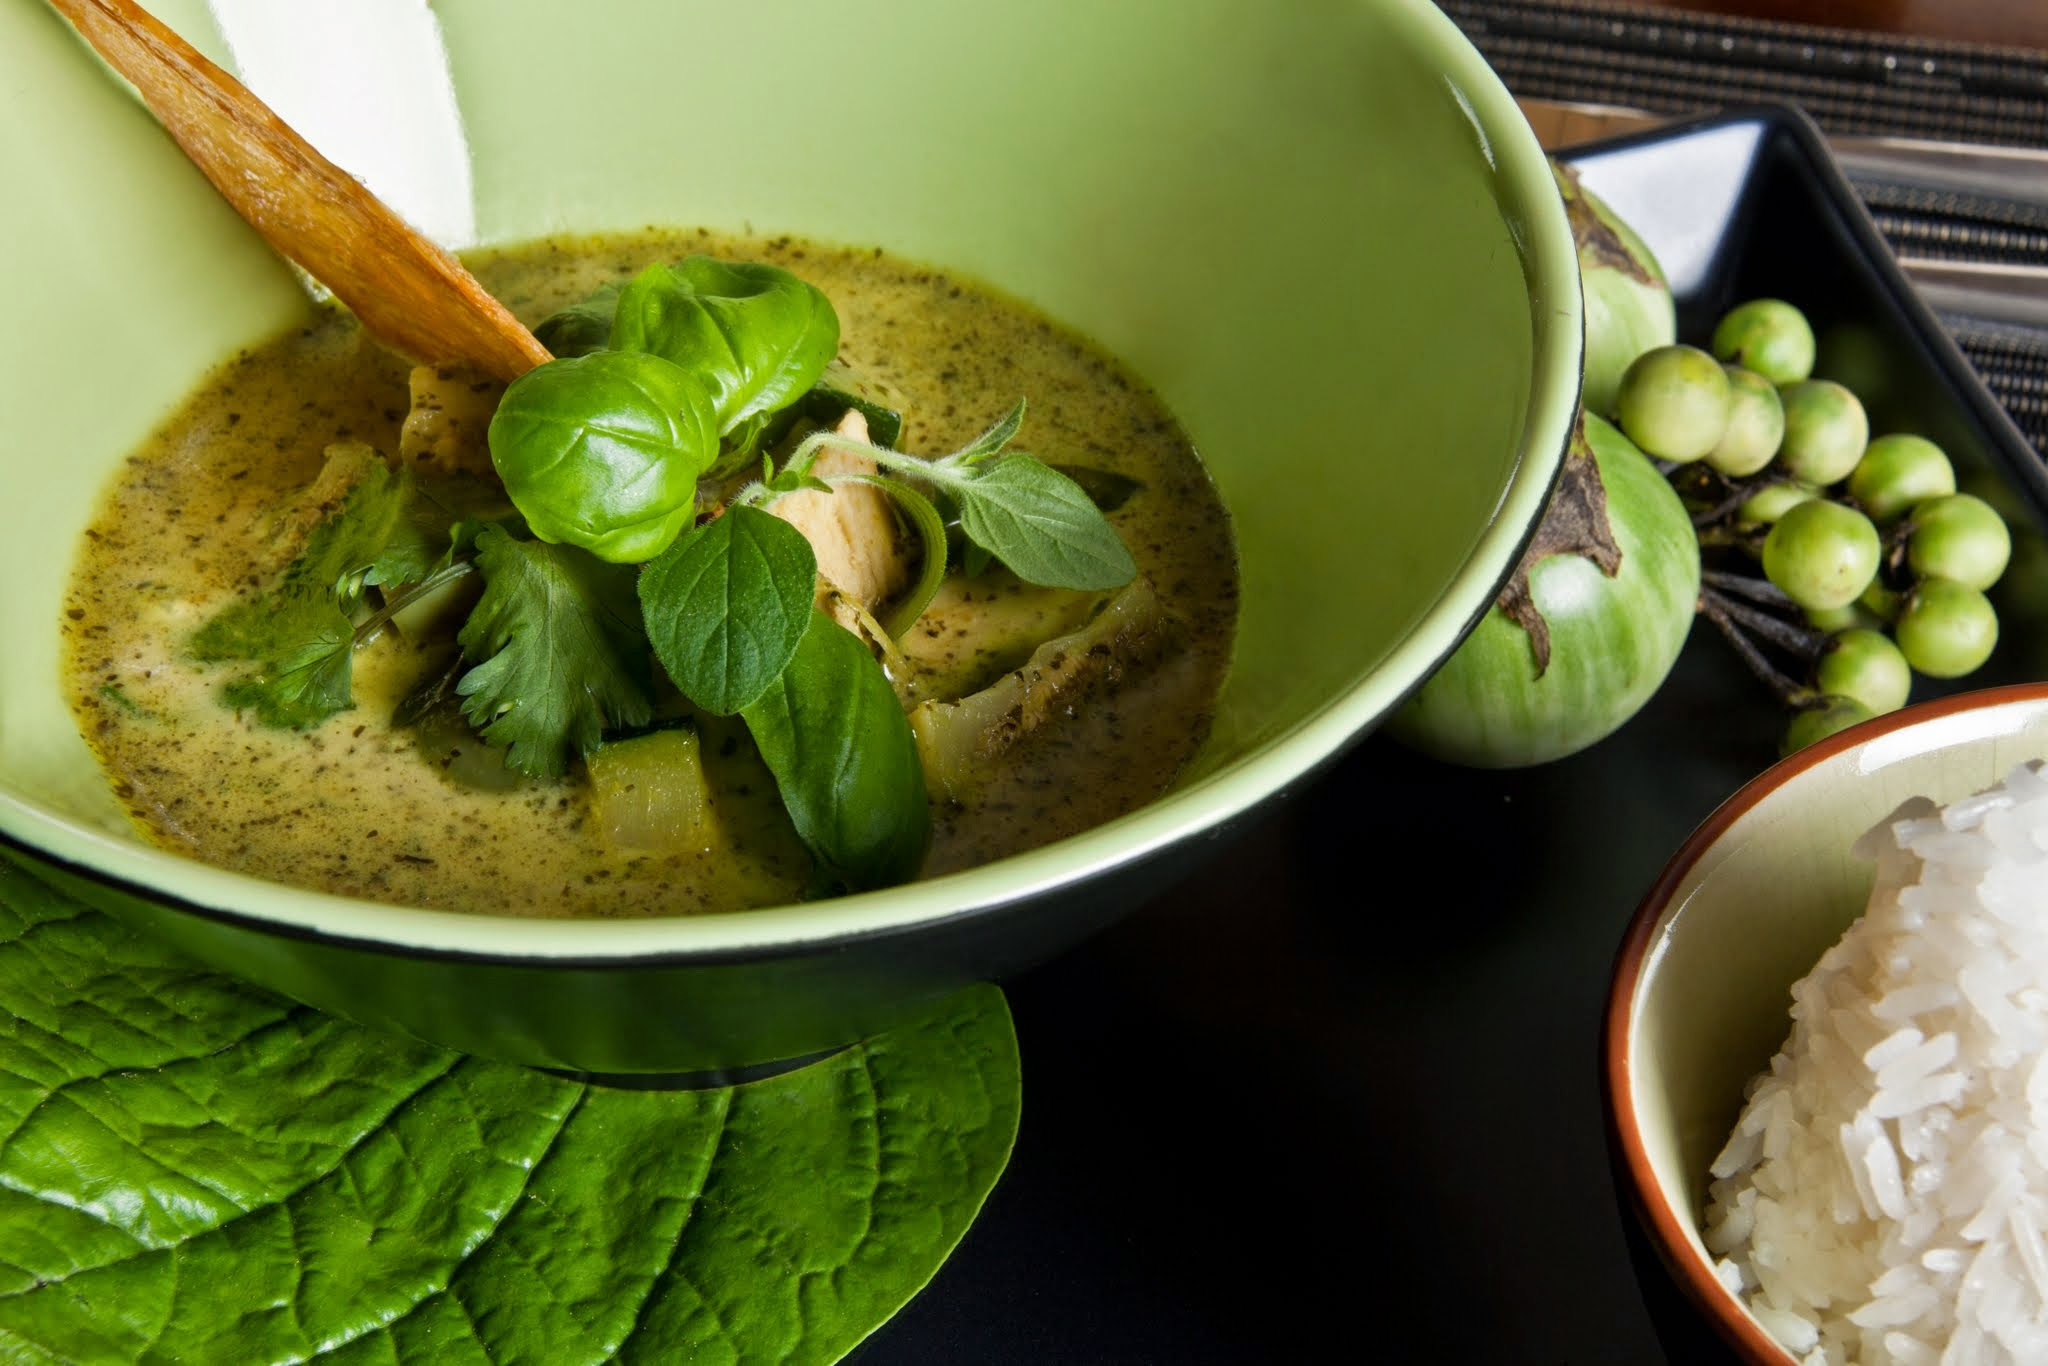 The green curry here is simply awesome.